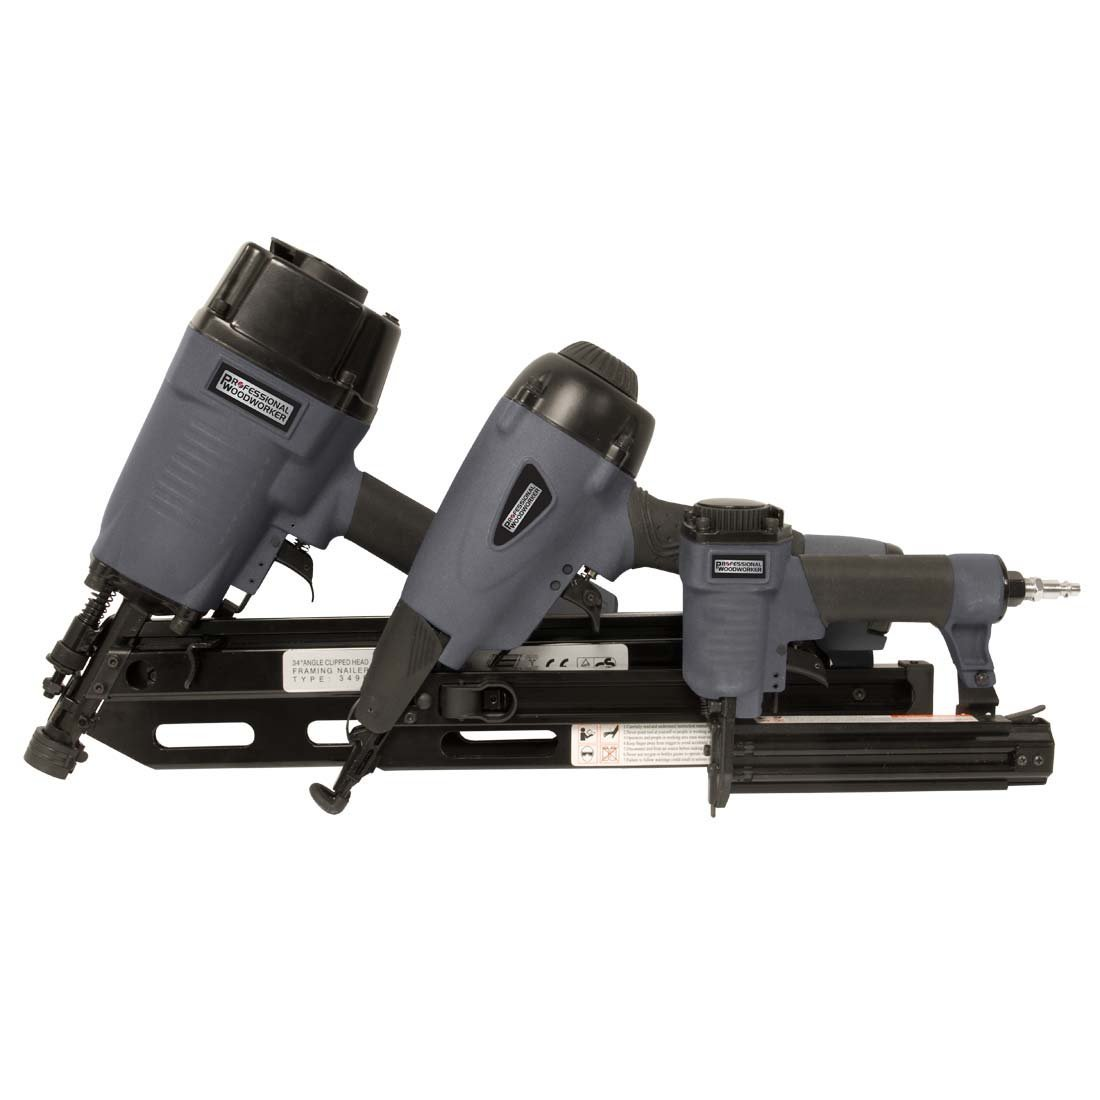 Professional Woodworker 7613 3 Piece Pneumatic Nailer Combo Kit